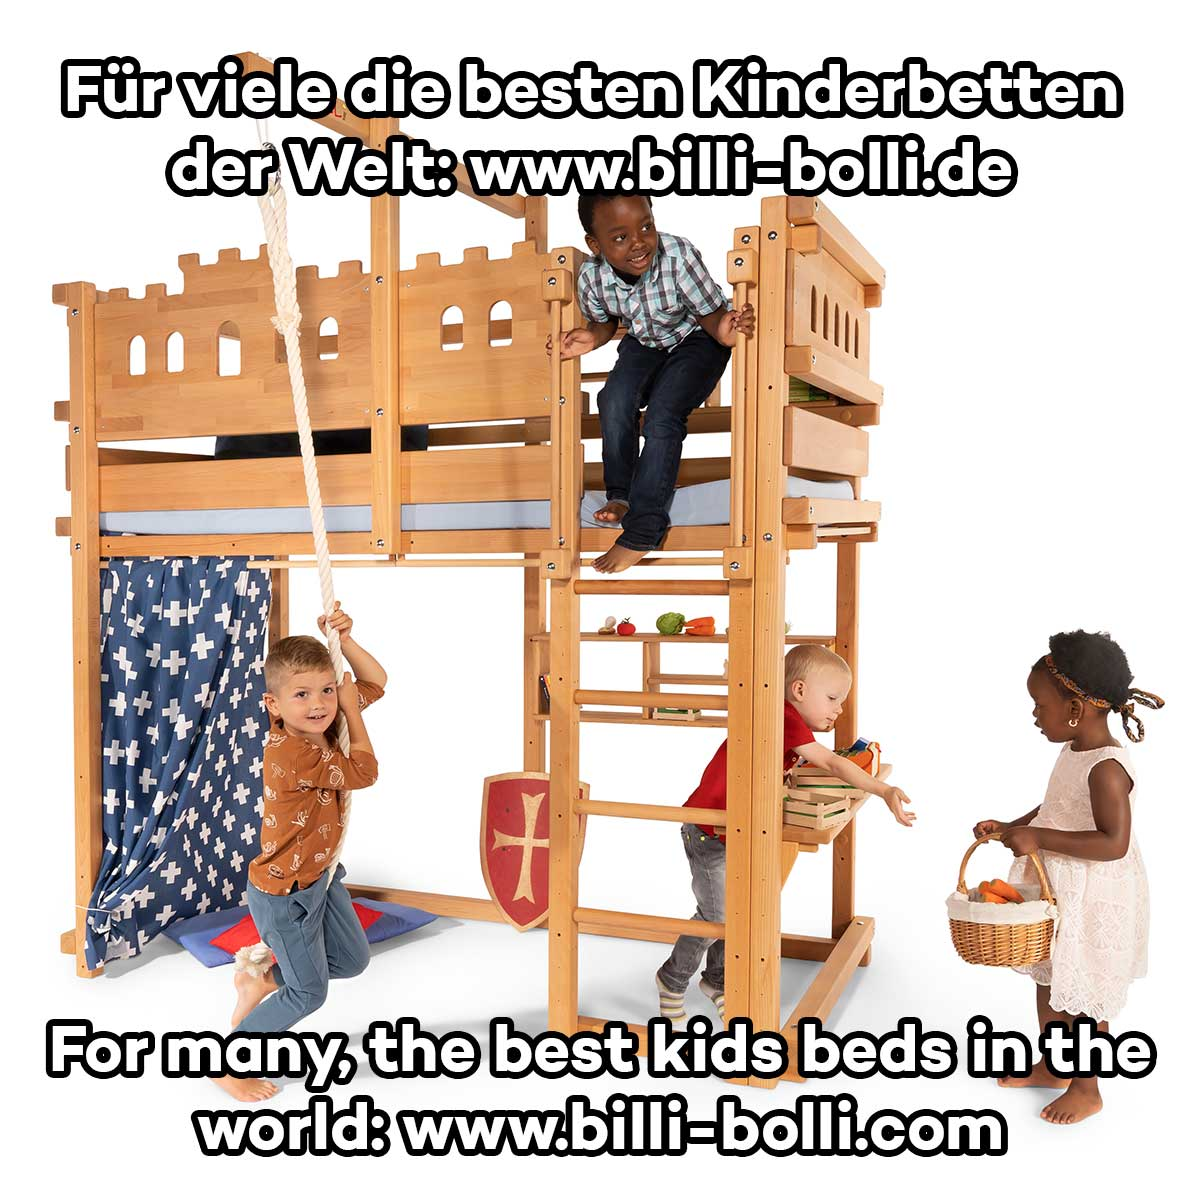 moizi kinderst hle online kaufen billi bolli kinderm bel. Black Bedroom Furniture Sets. Home Design Ideas